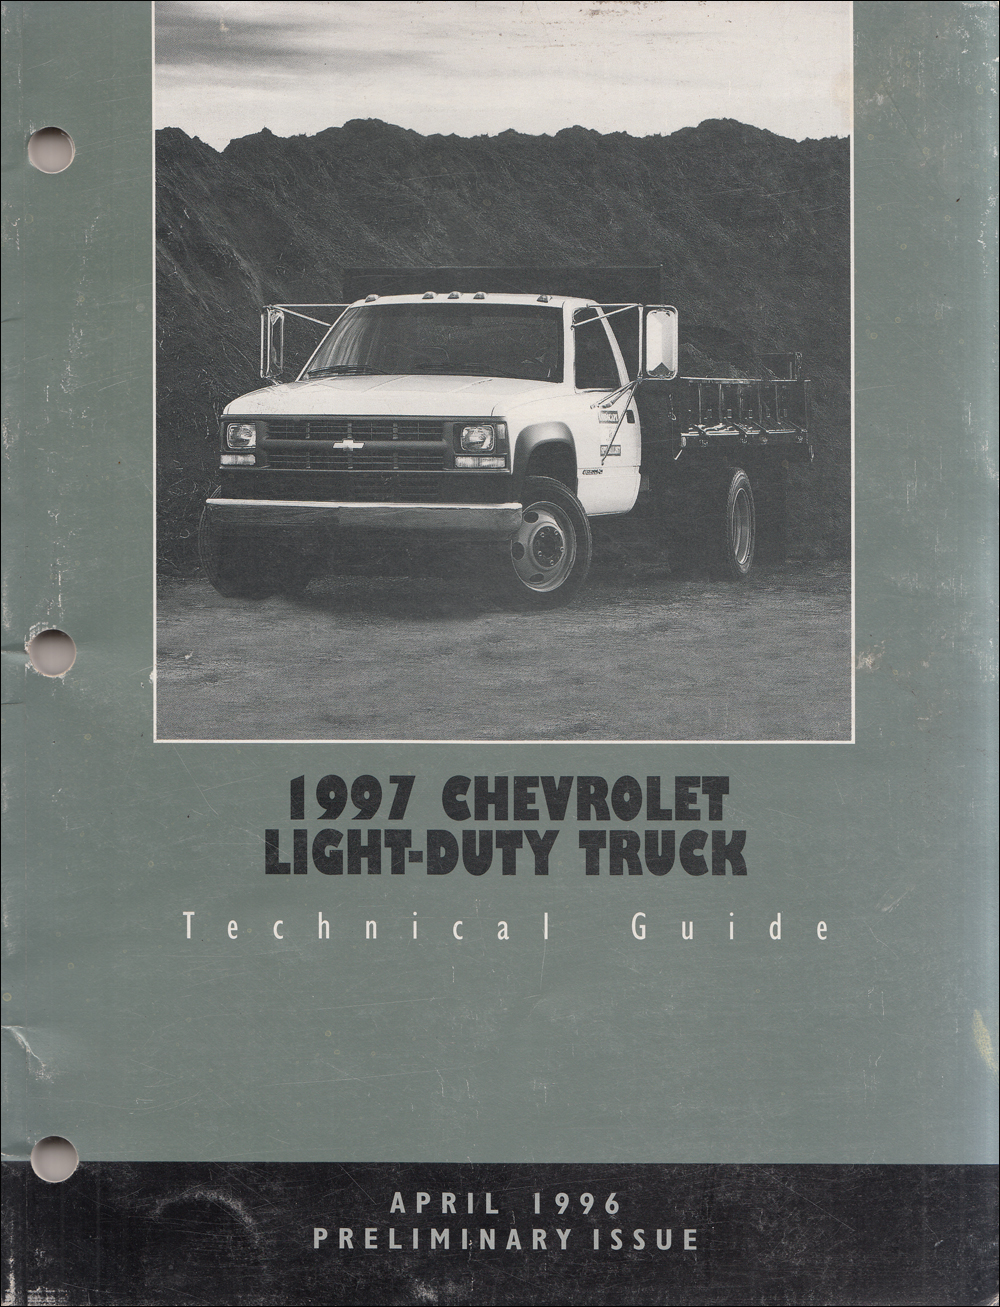 1997 Chevrolet Truck Technical Guide Dealer Album Original Preliminary